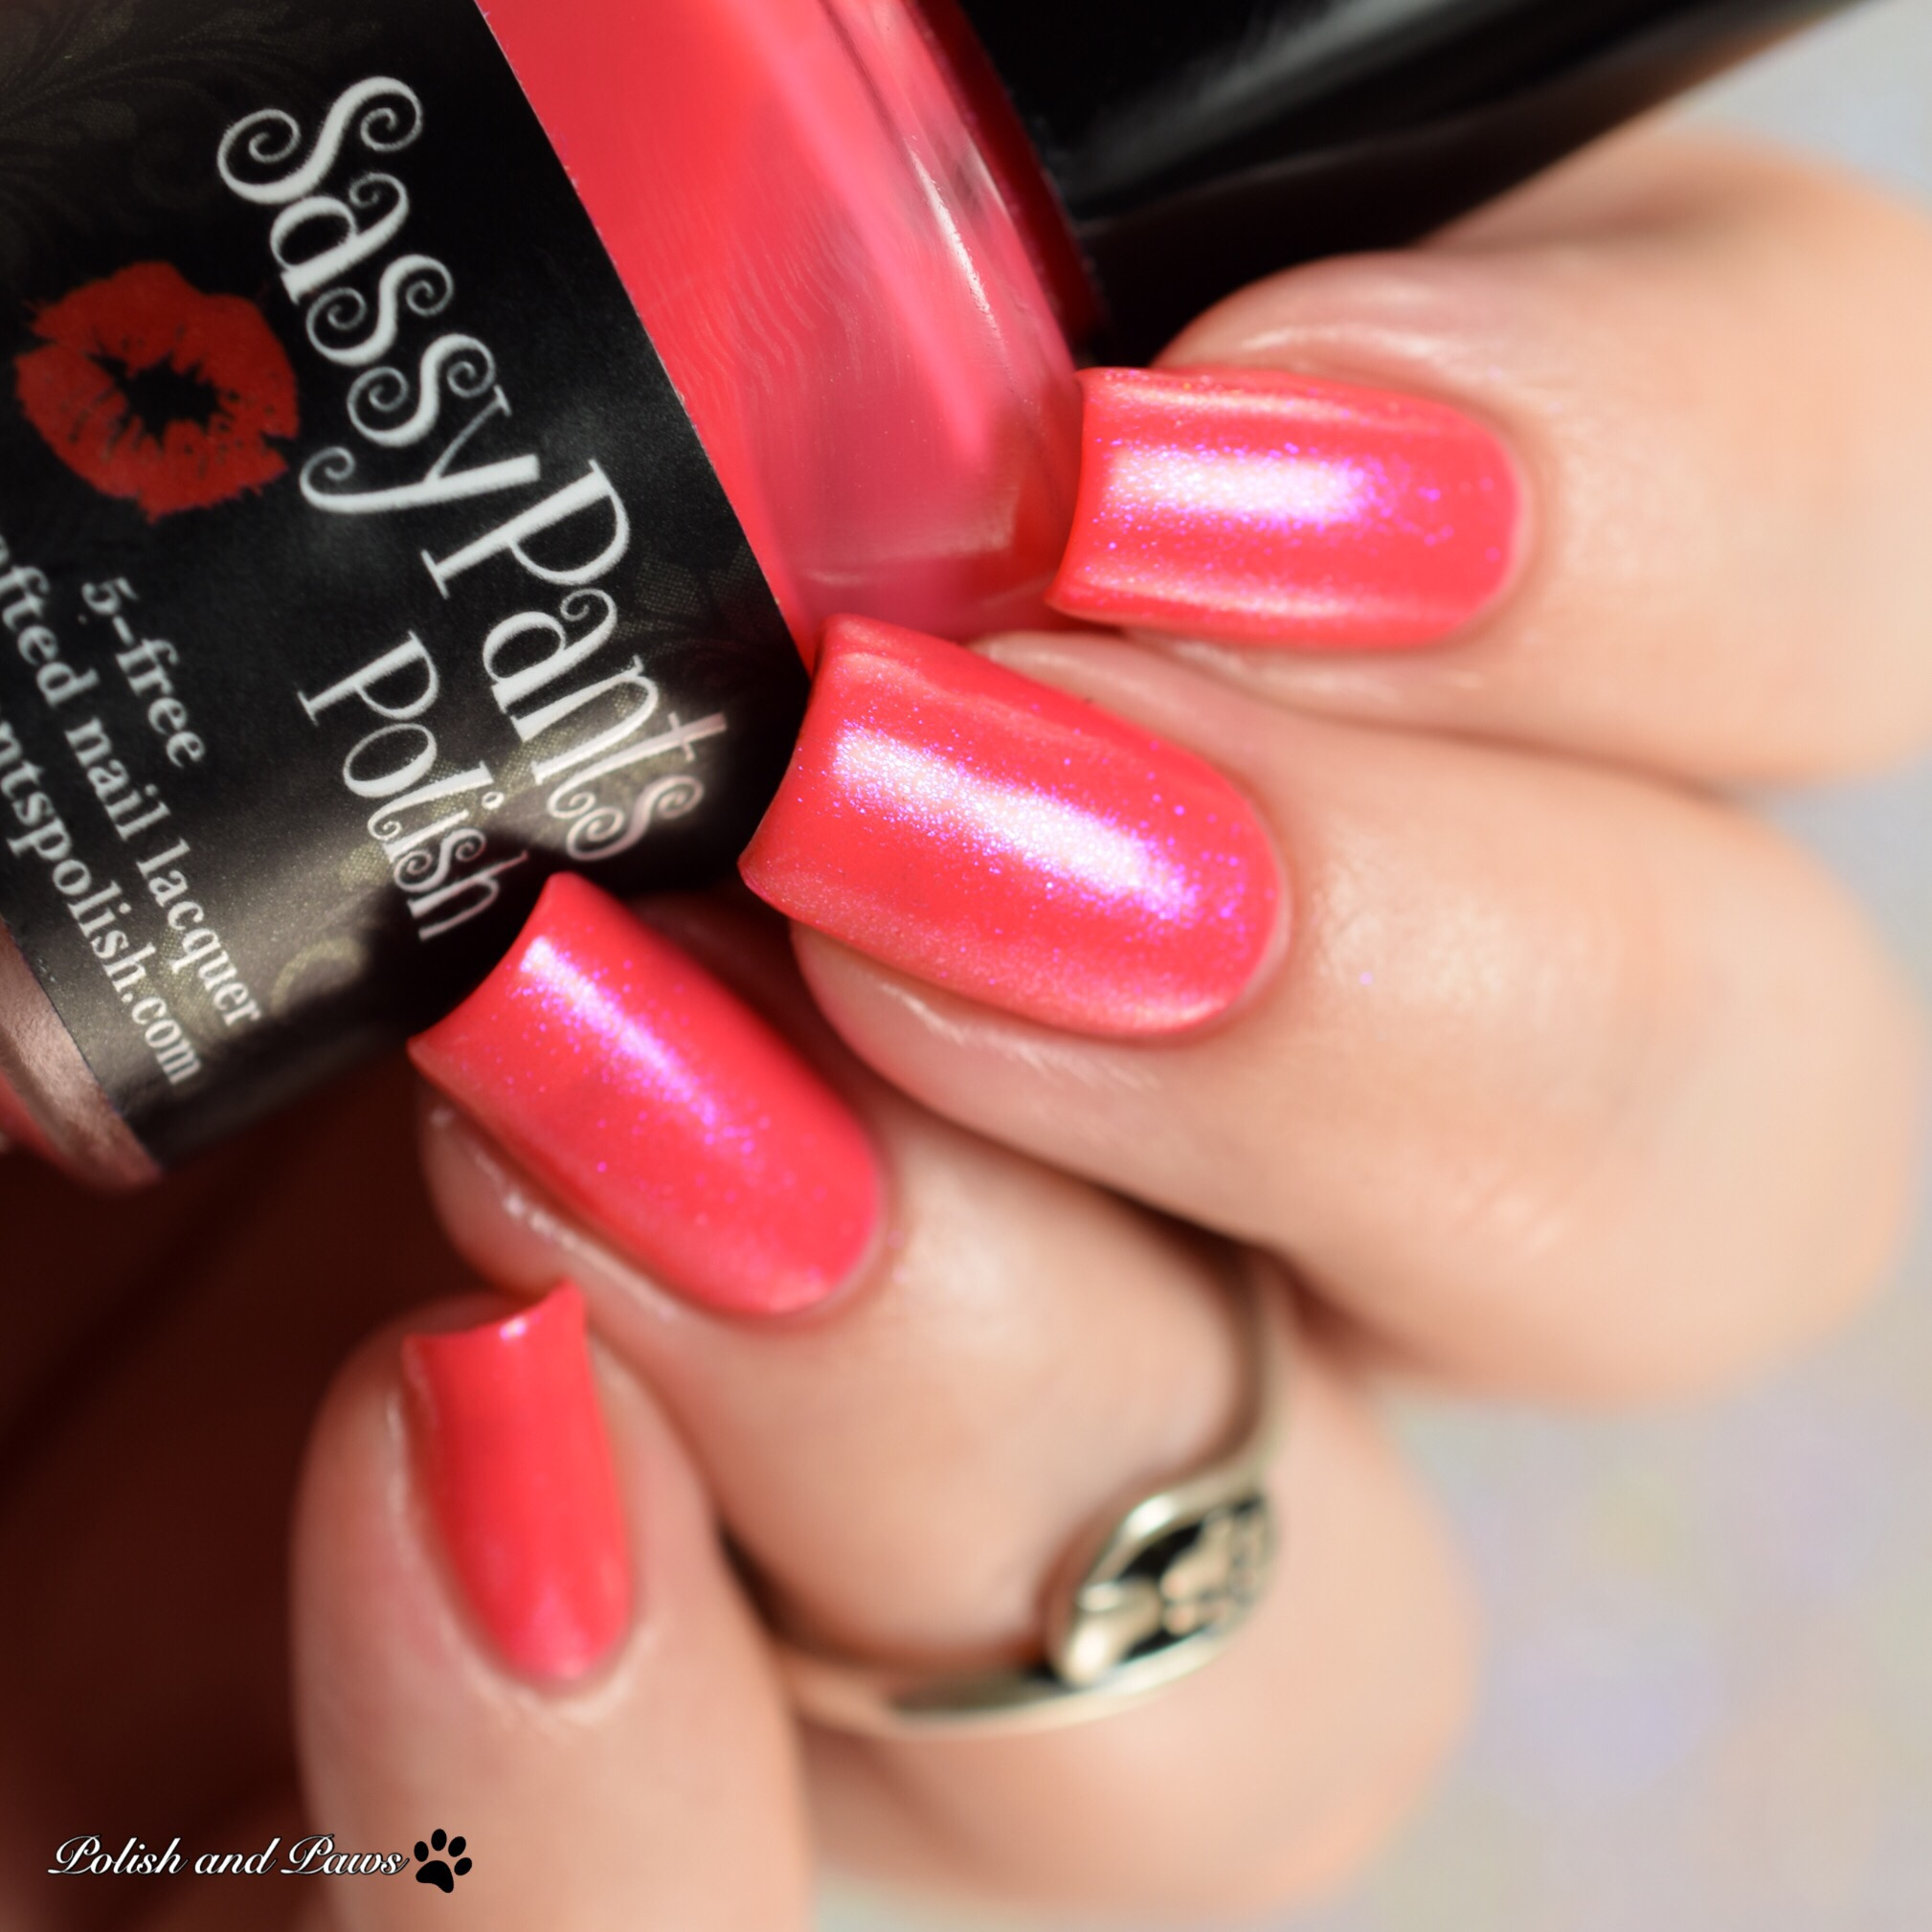 Sassy Pants Polish Forever Yours layered over Kiss Goodbye